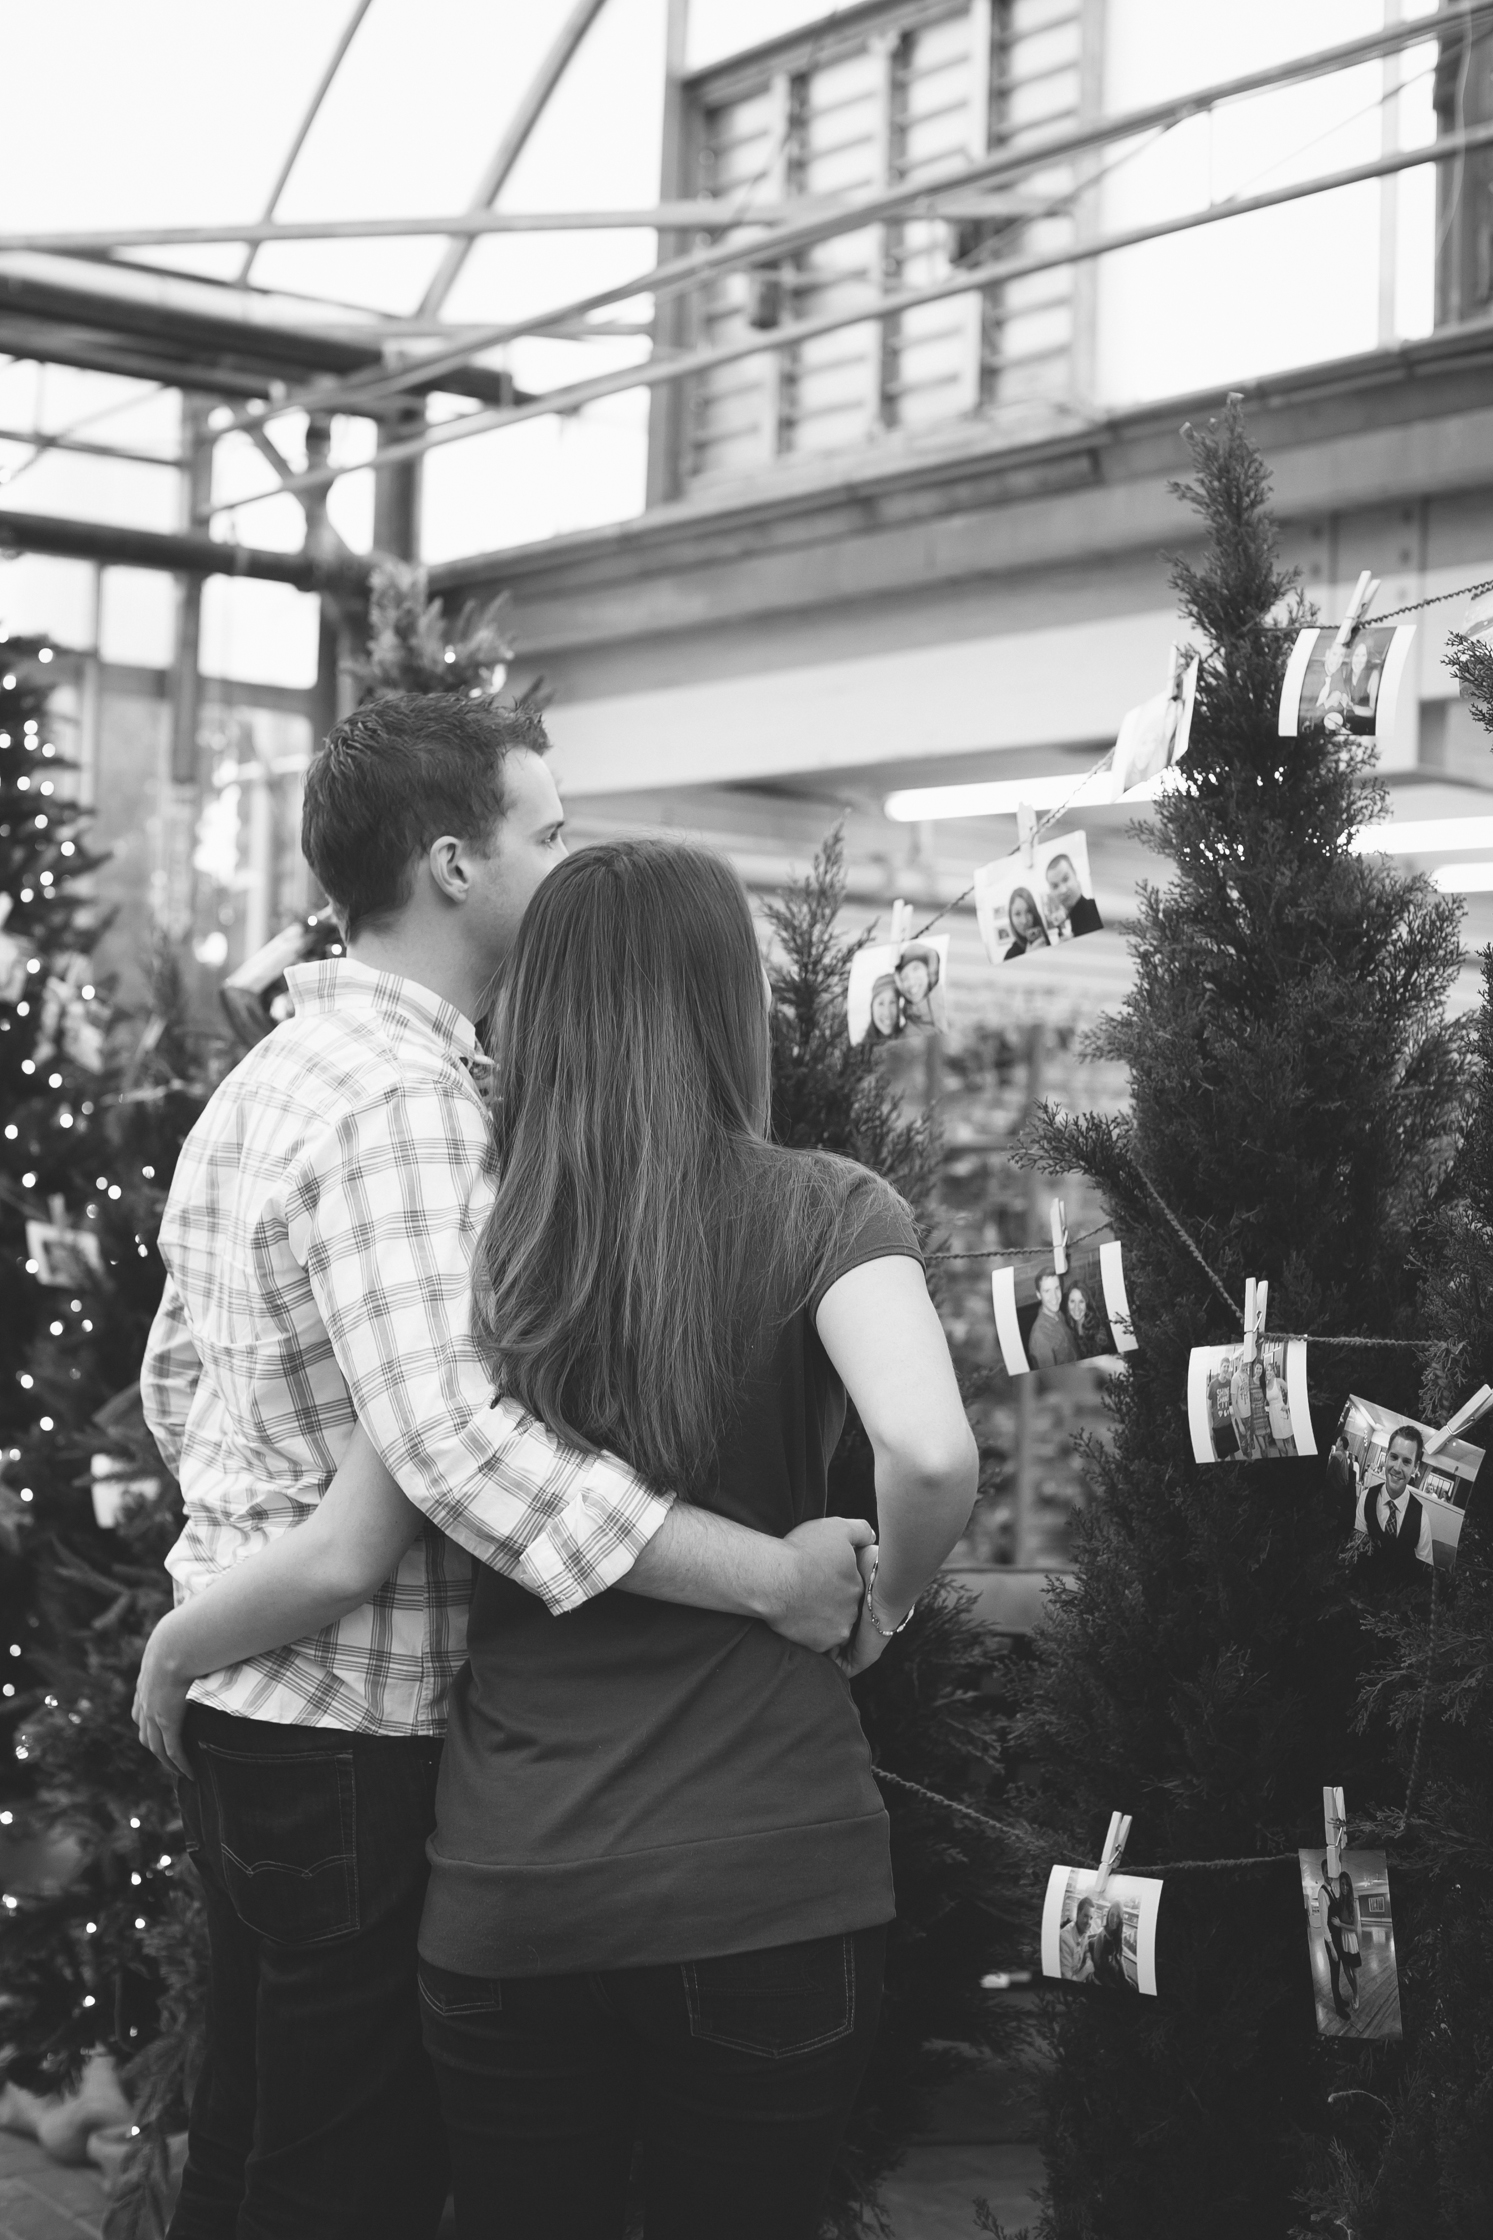 Image 12 of Cutest Christmas Proposal Ever | Brittany  and Tim